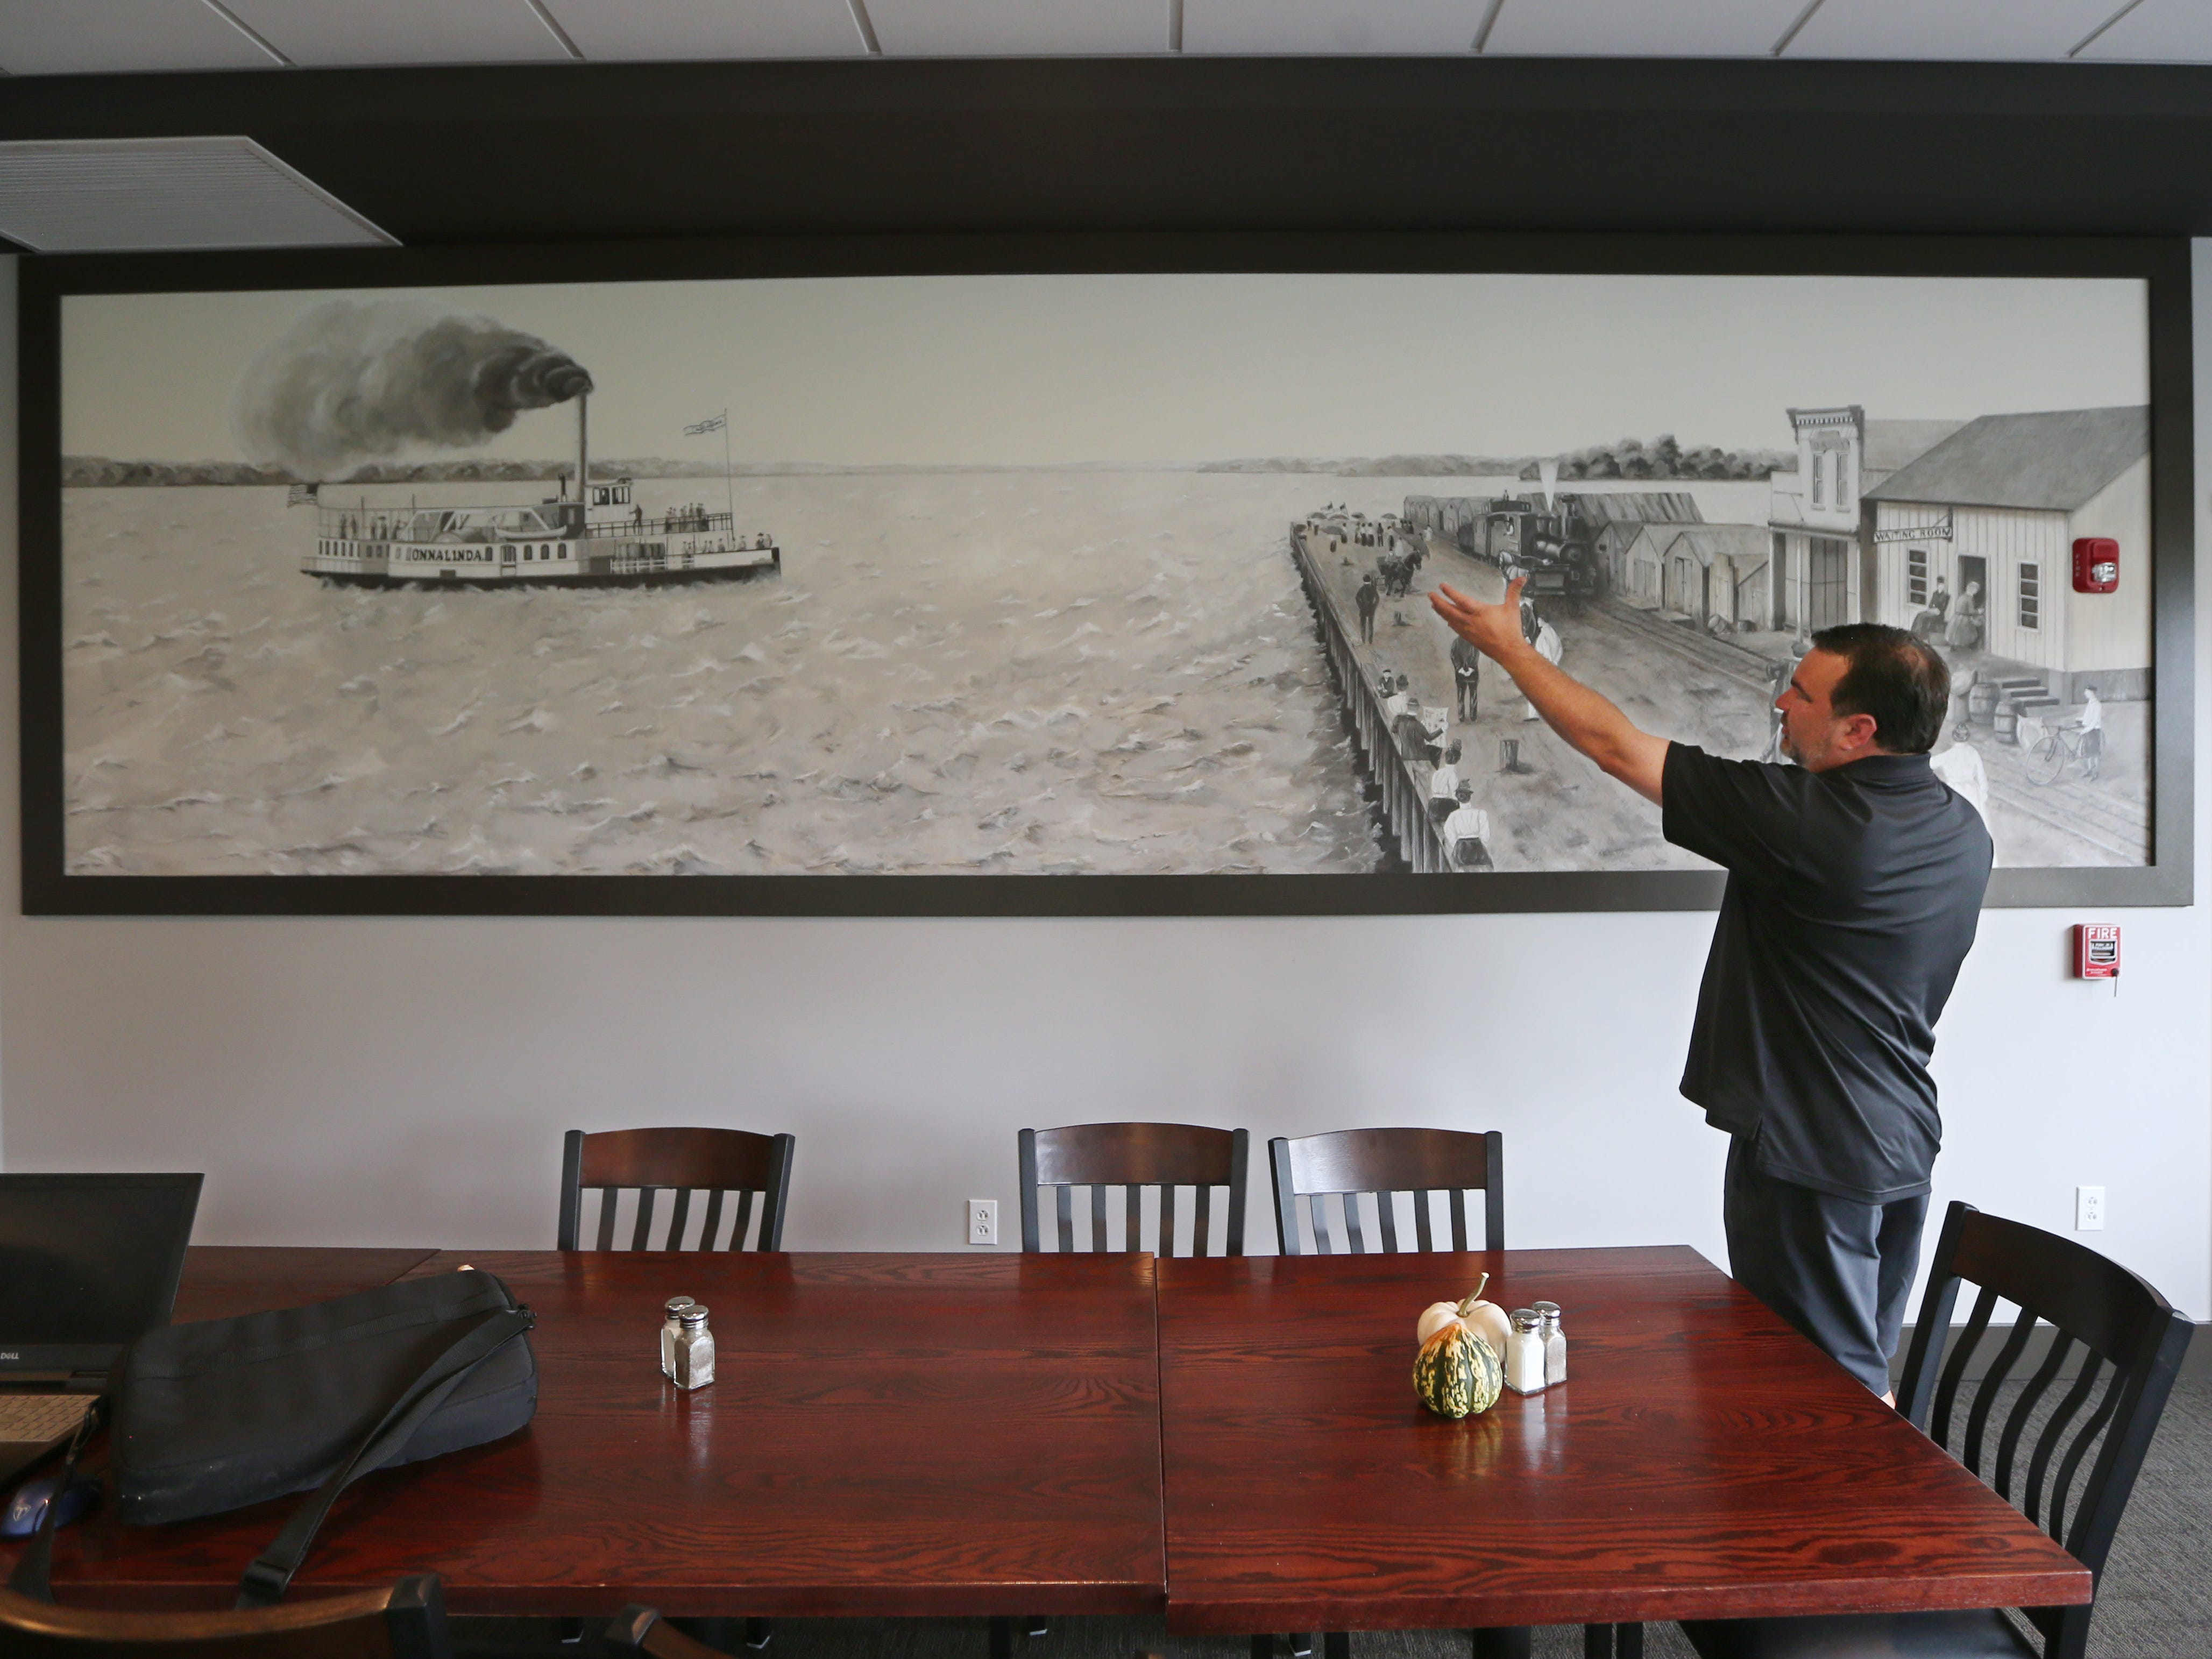 Nick Violas talks about a large mural depicting Canandaigua Lake that hangs in his new party room.